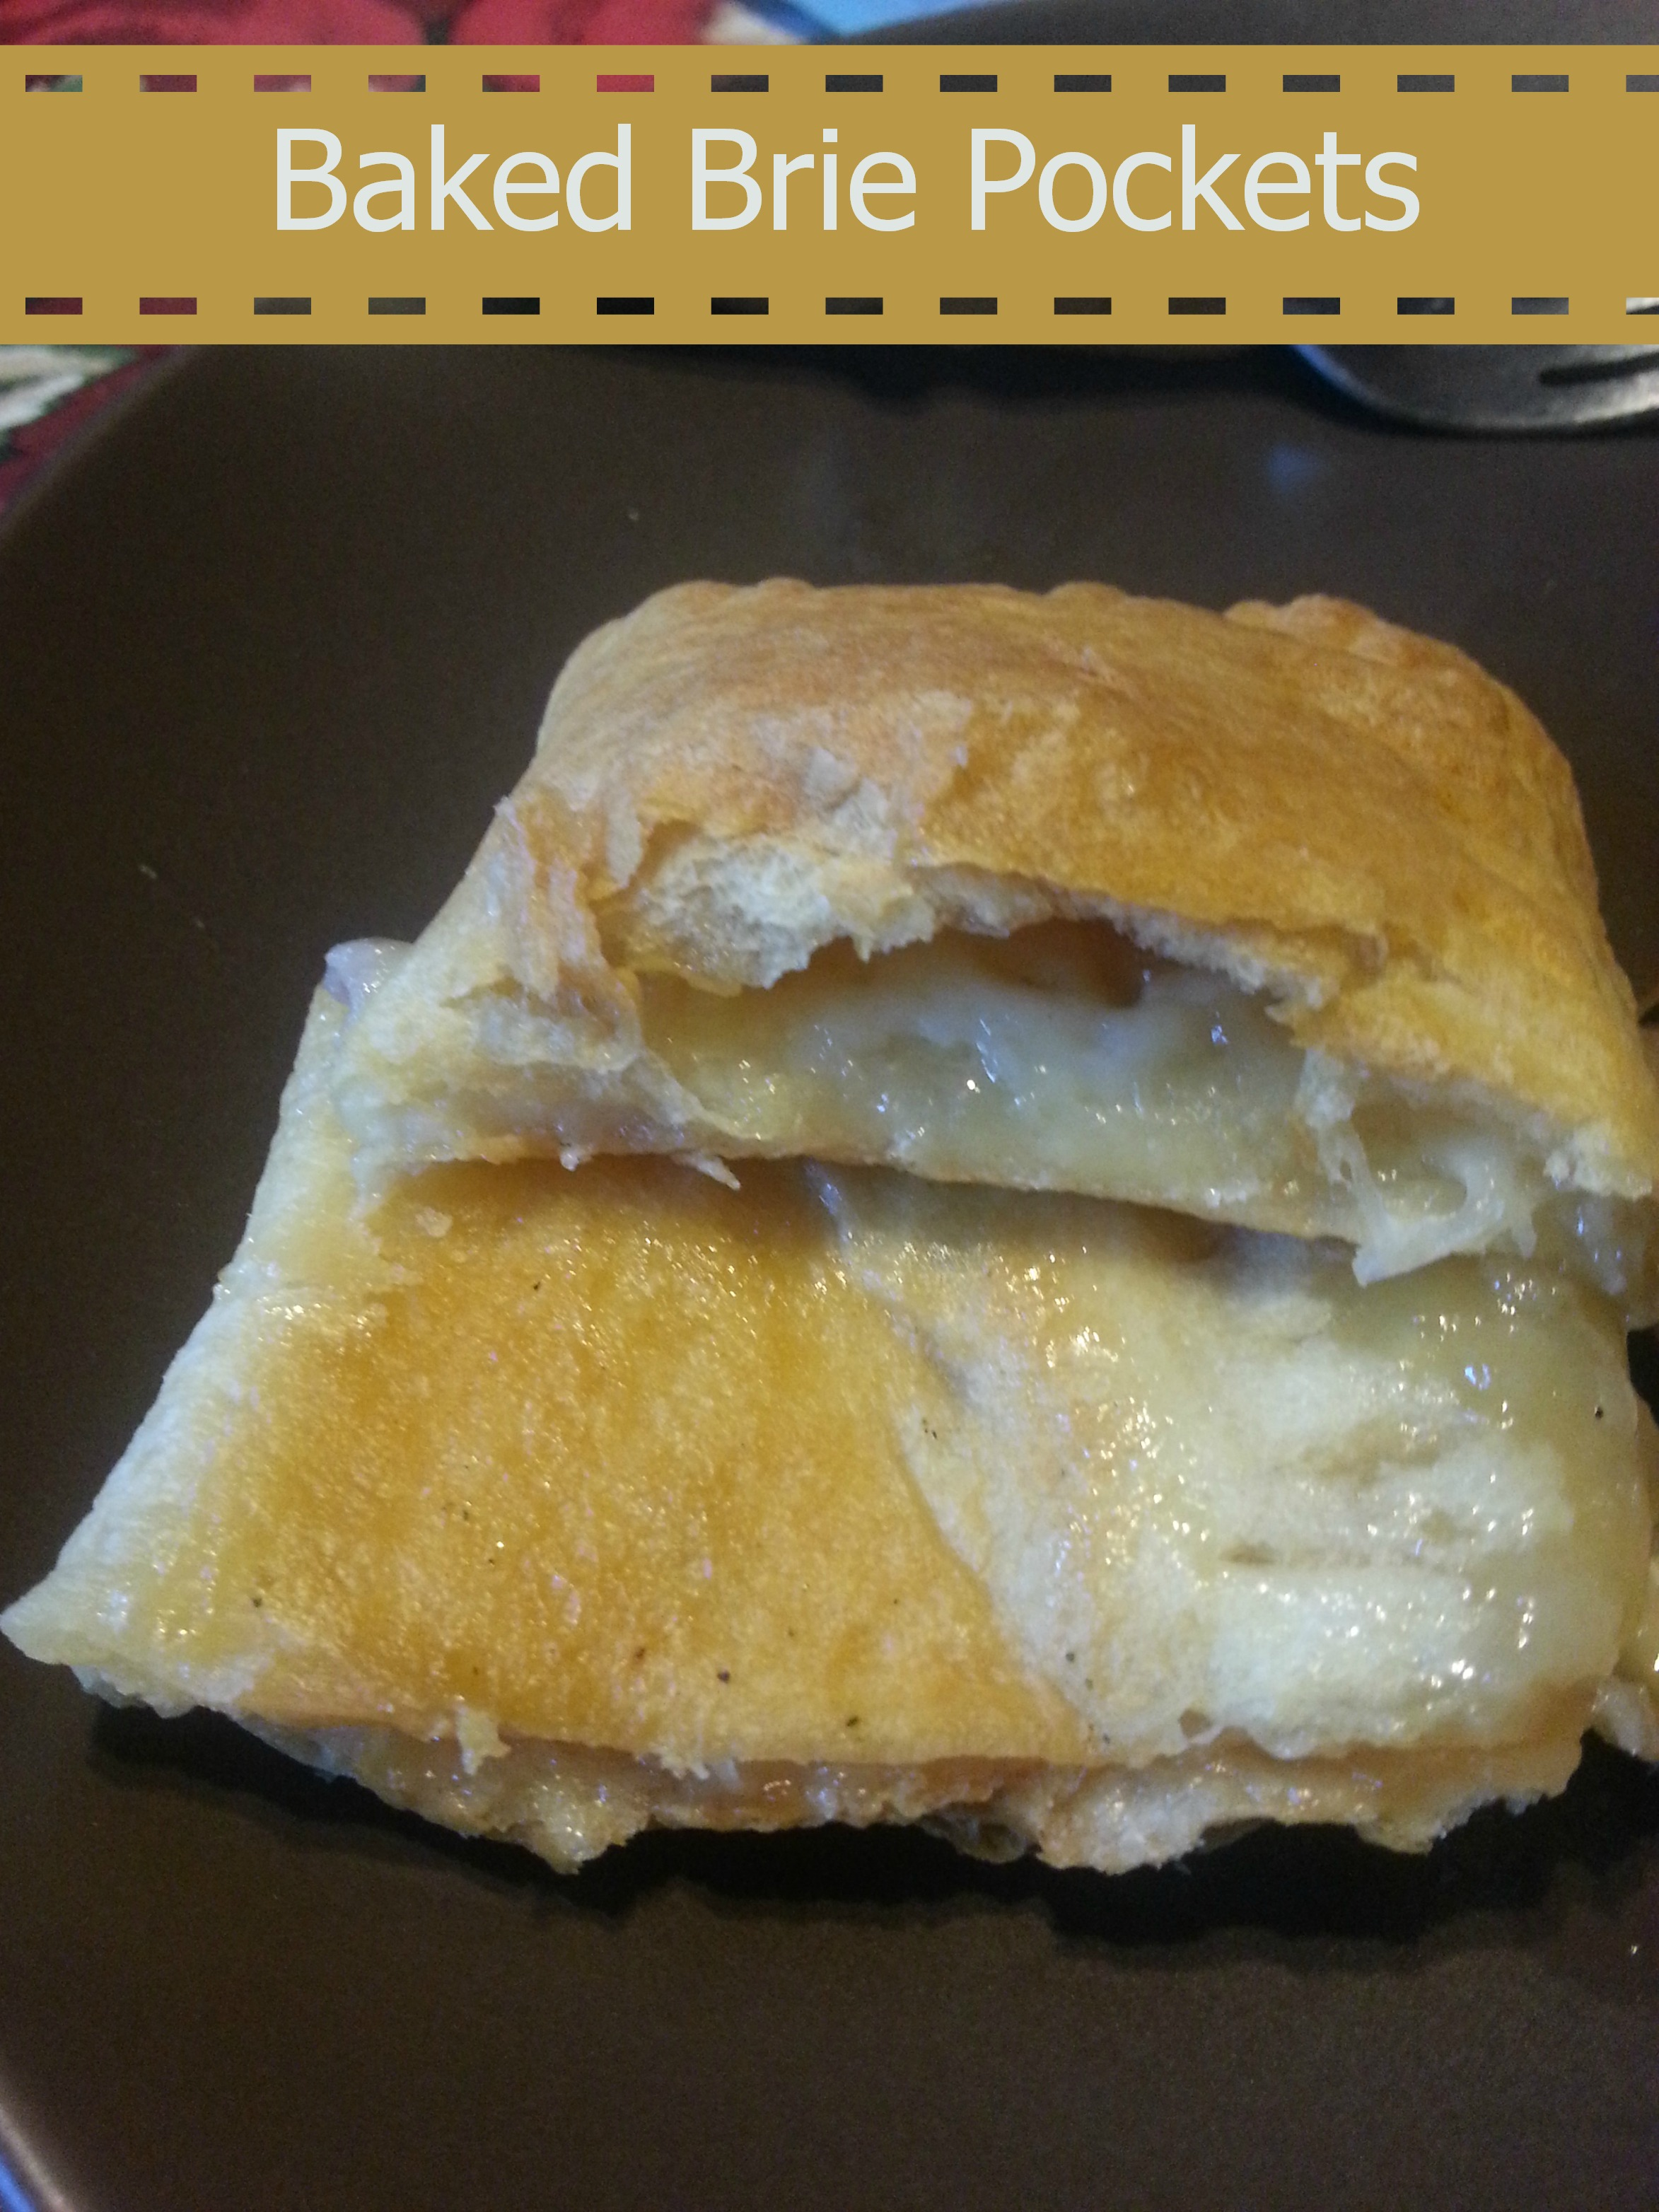 Baked Brie Pockets